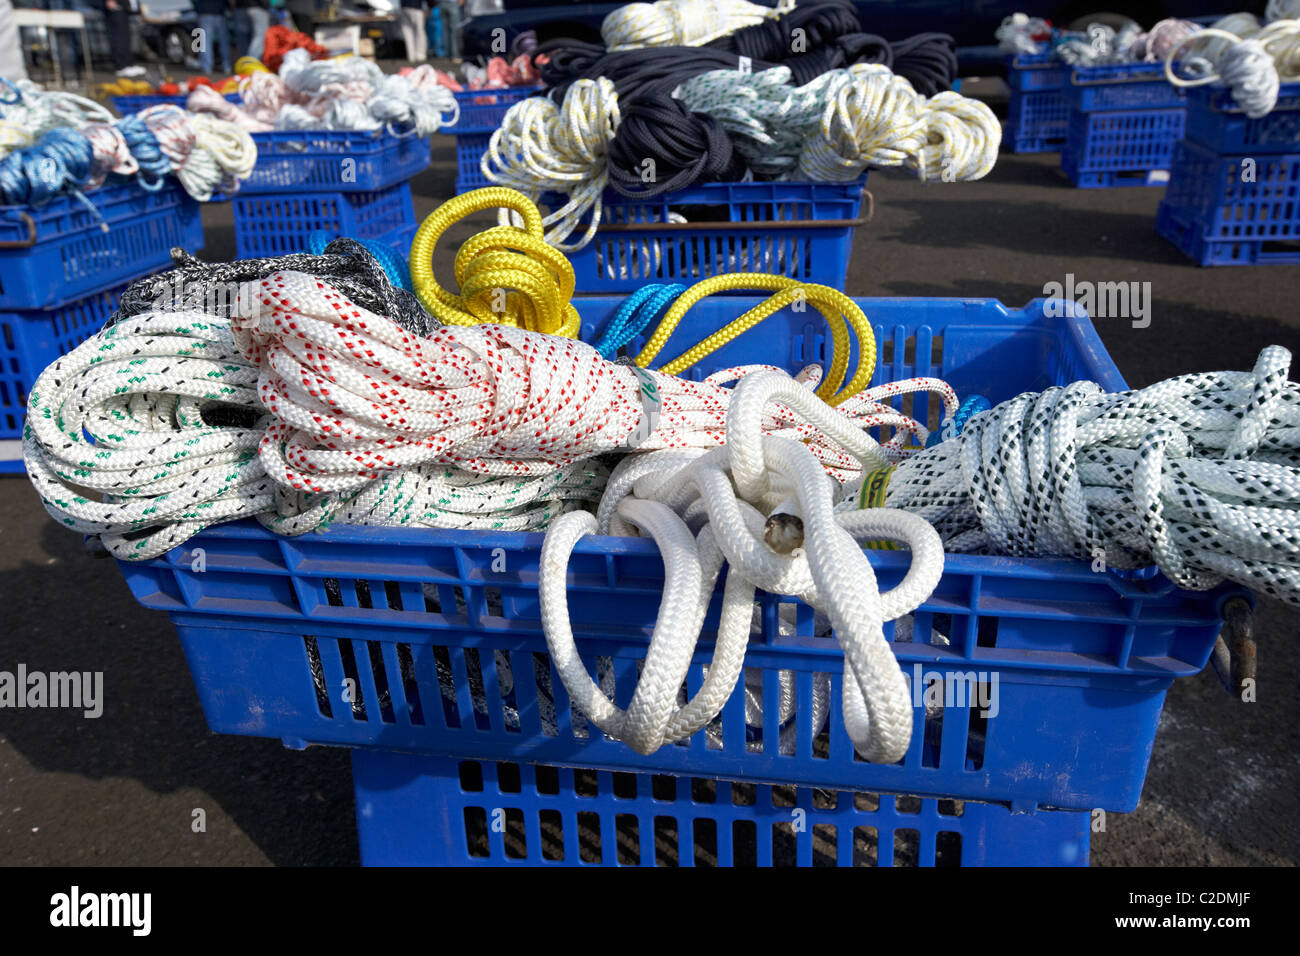 crates of mixed ropes for sale at boat jumble sale in the uk - Stock Image